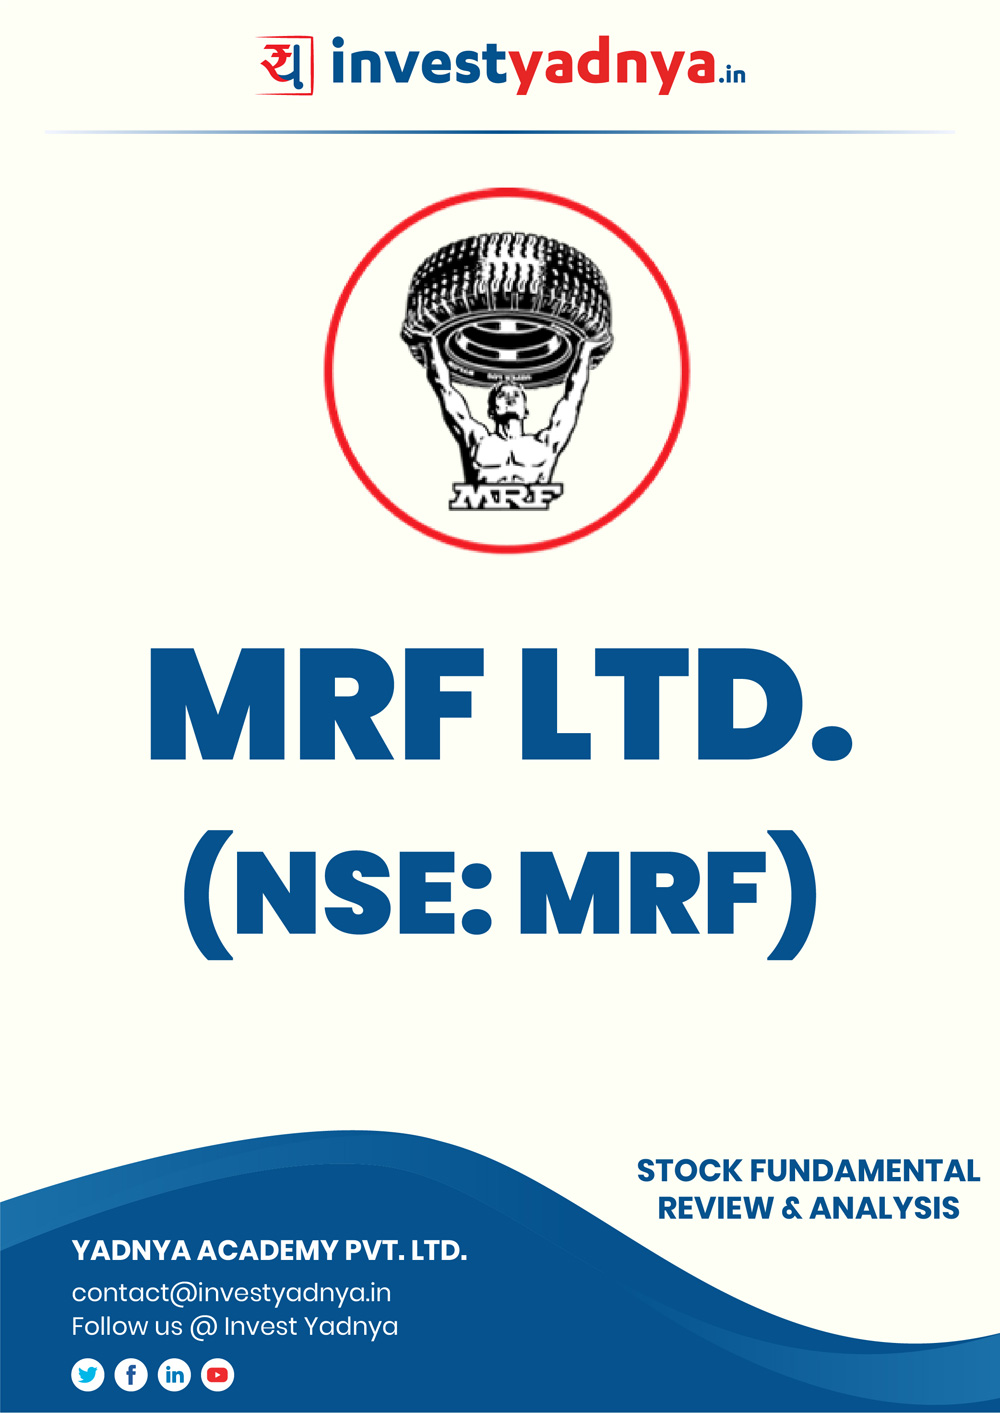 MRF Ltd. Company/Stock Review & Analysis based on Q42018-19 and FY2018-19 data. The book contains Fundamental Analysis of the company considering both Quantitative (Financial) and Qualitative Parameters.